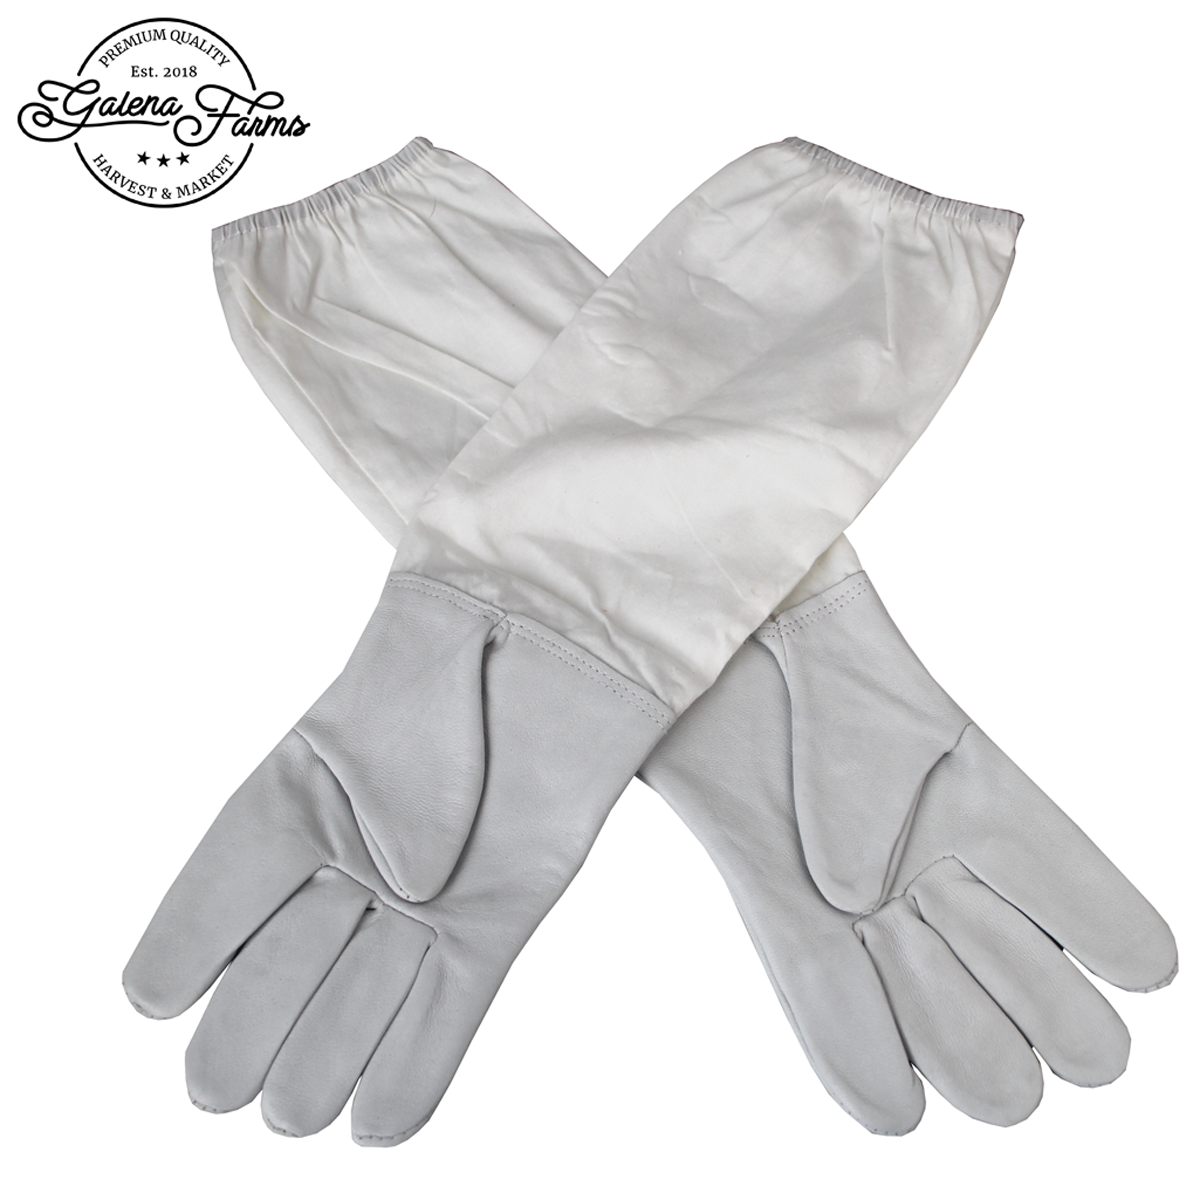 Galena Farms Gloves Are Made From Sheepskin Leather &  Go Down To The Elbow. They Are Cinched On The End To Keep Bees Out